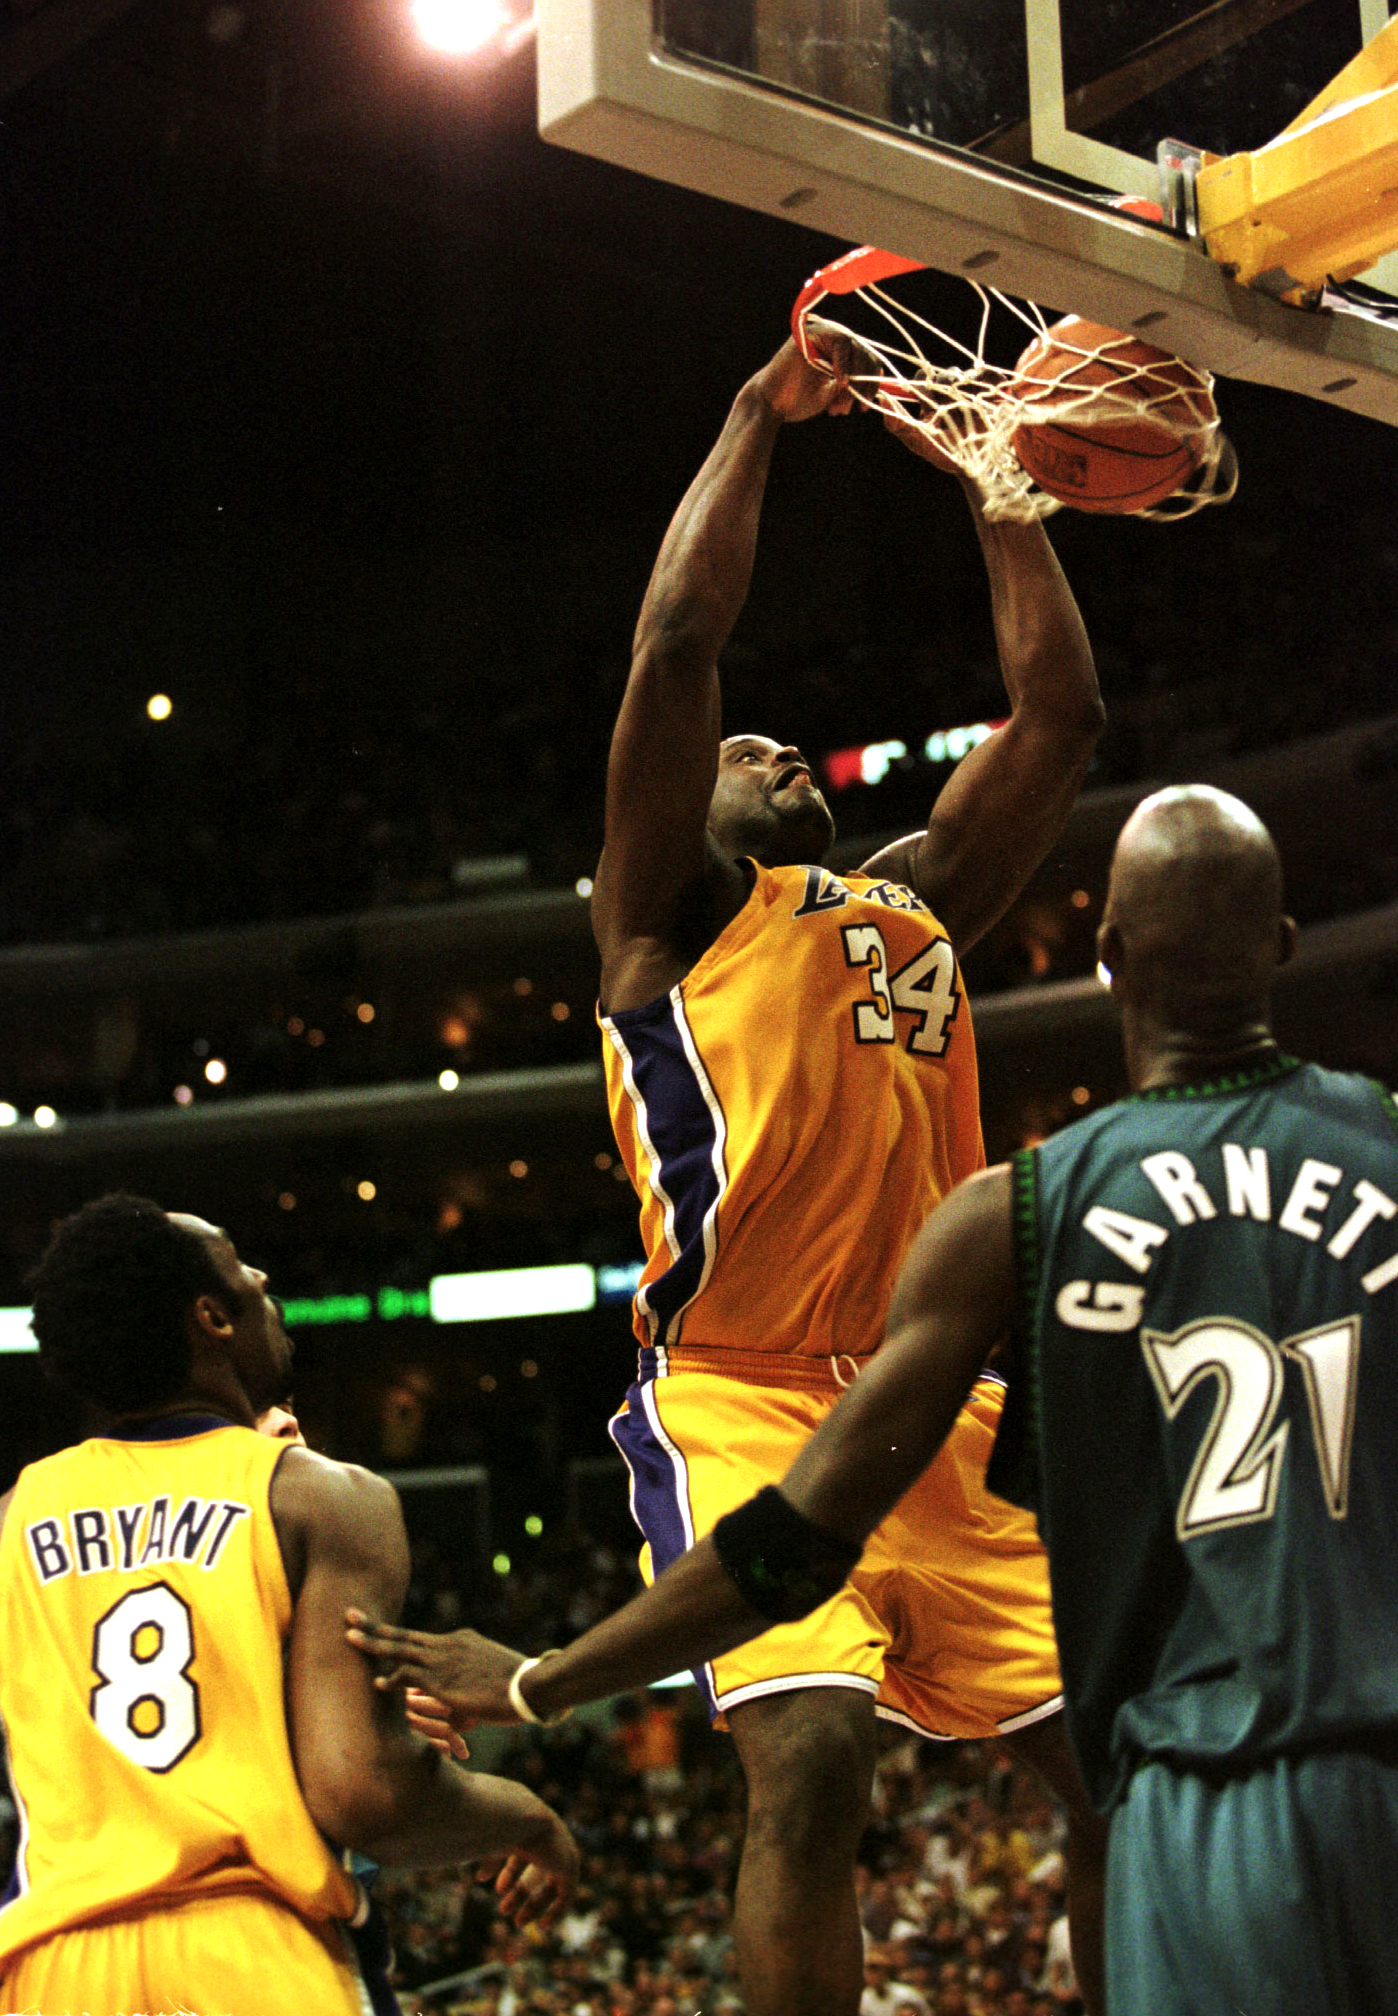 16 Apr 2000: Shaquille O''Neal #34 of the Los Angeles Lakers slam dunks the ball as teammate Kobe Bryant #8 and Kevin Garnett #21 of the Minnesota Timberwolves look on during their game at the Staples Center in Los Angeles, California. The Lakers defeated